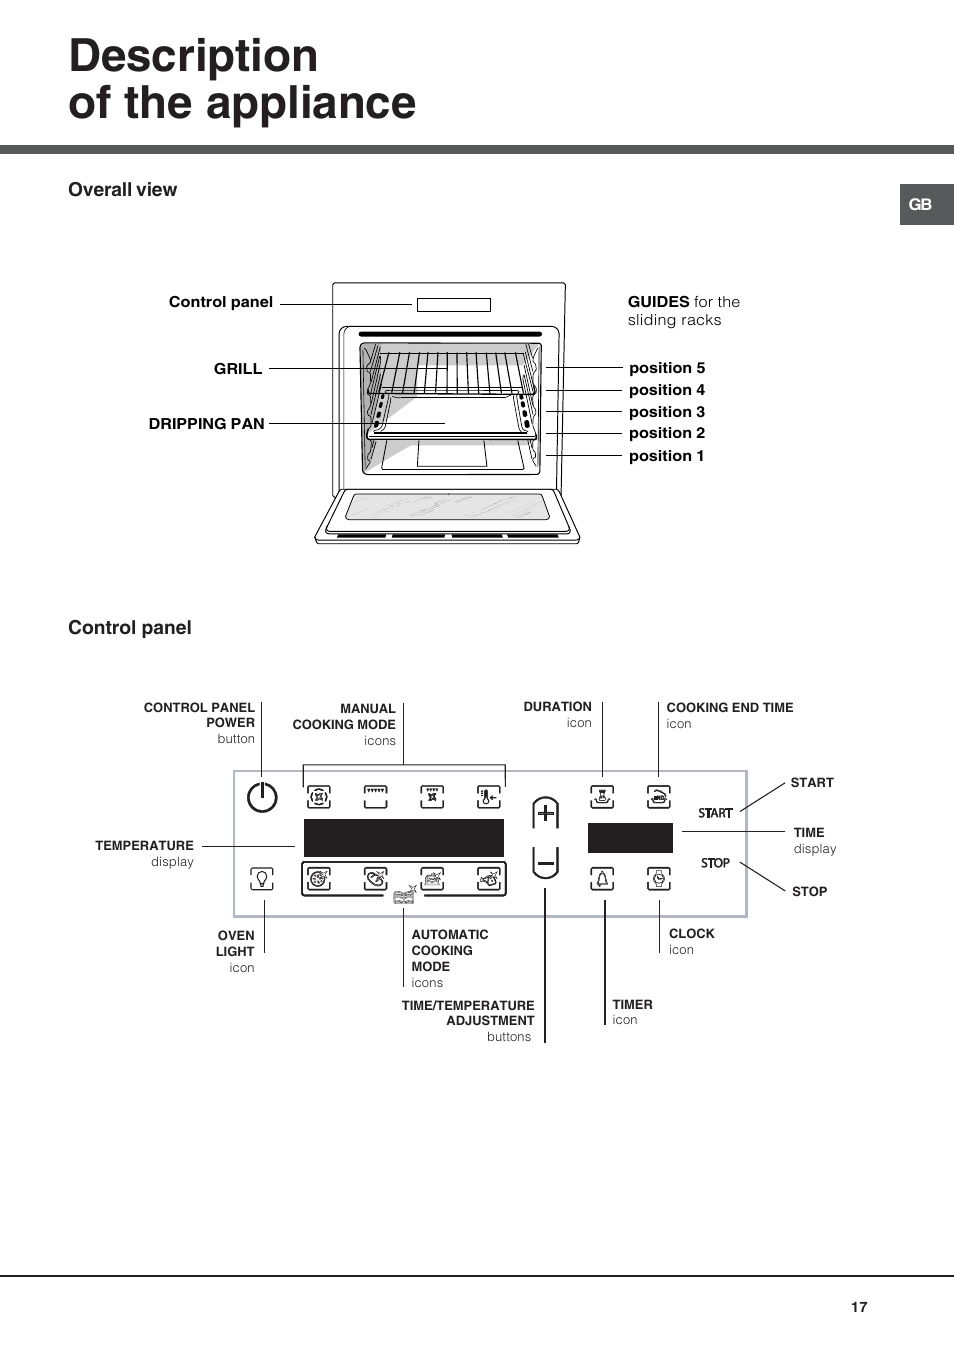 Description of the appliance, Overall view control panel